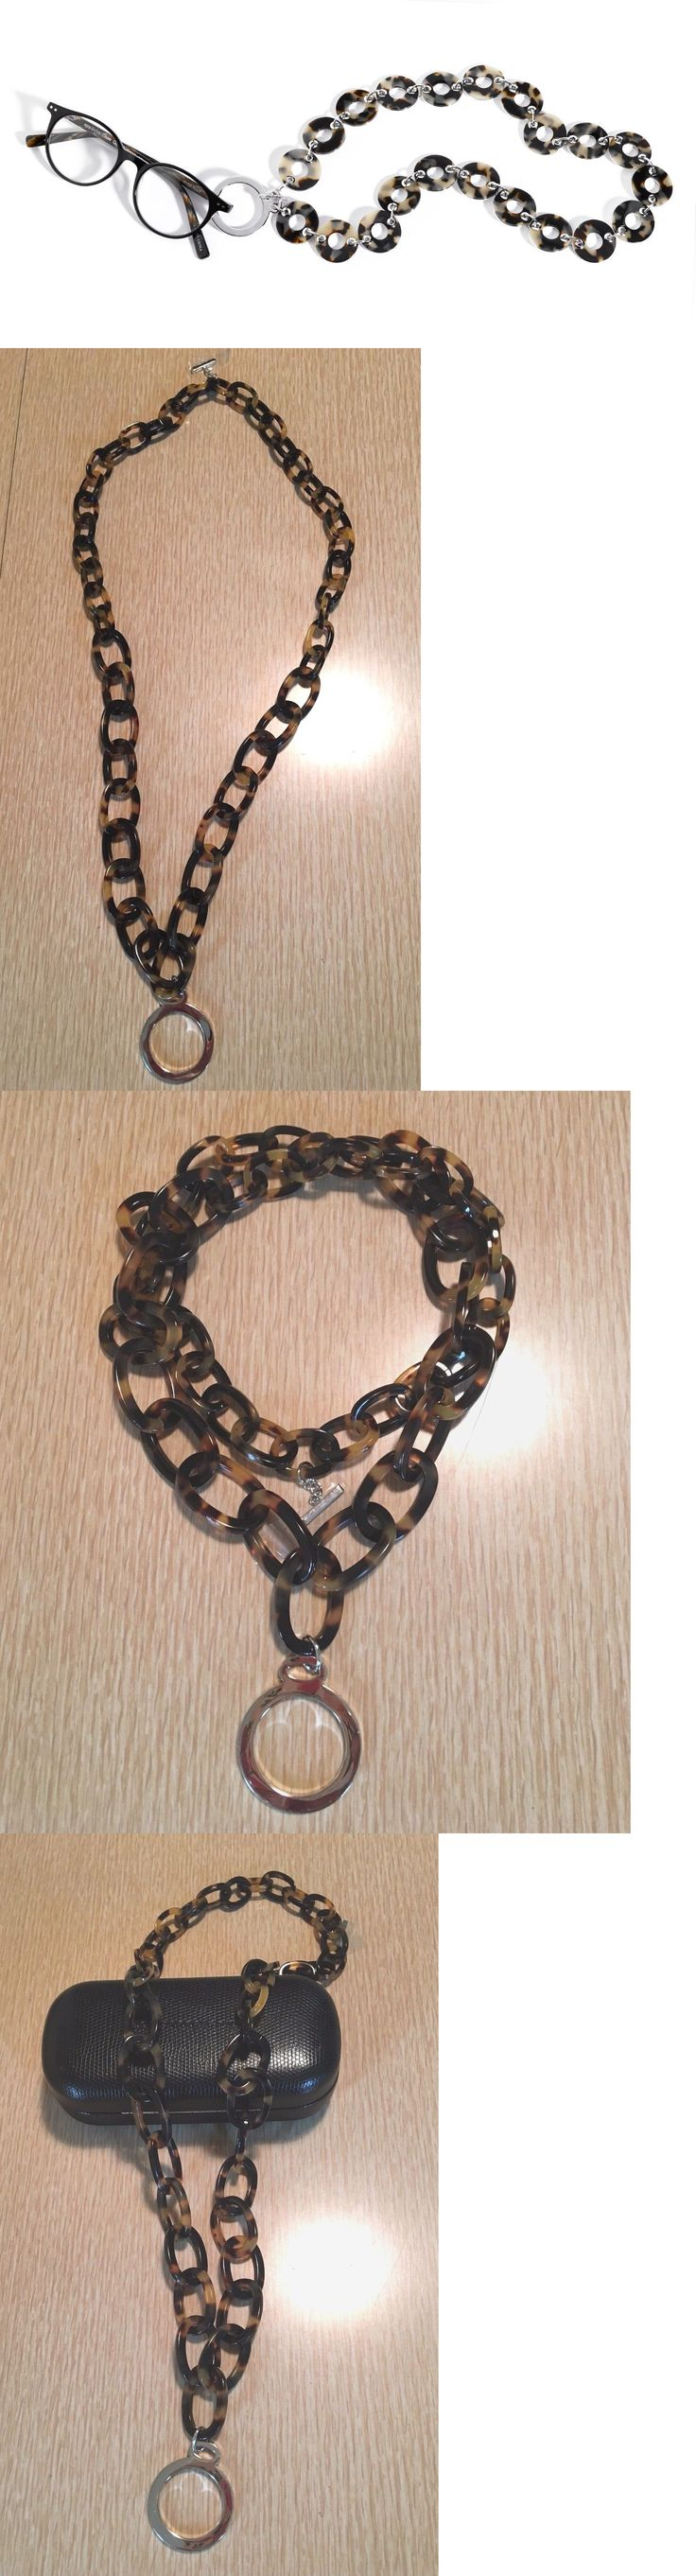 Eyewear Accessories 179249: Eyebobs Disc Jockey Chain Necklace For Glasses--New And Unused -> BUY IT NOW ONLY: $59.99 on eBay!